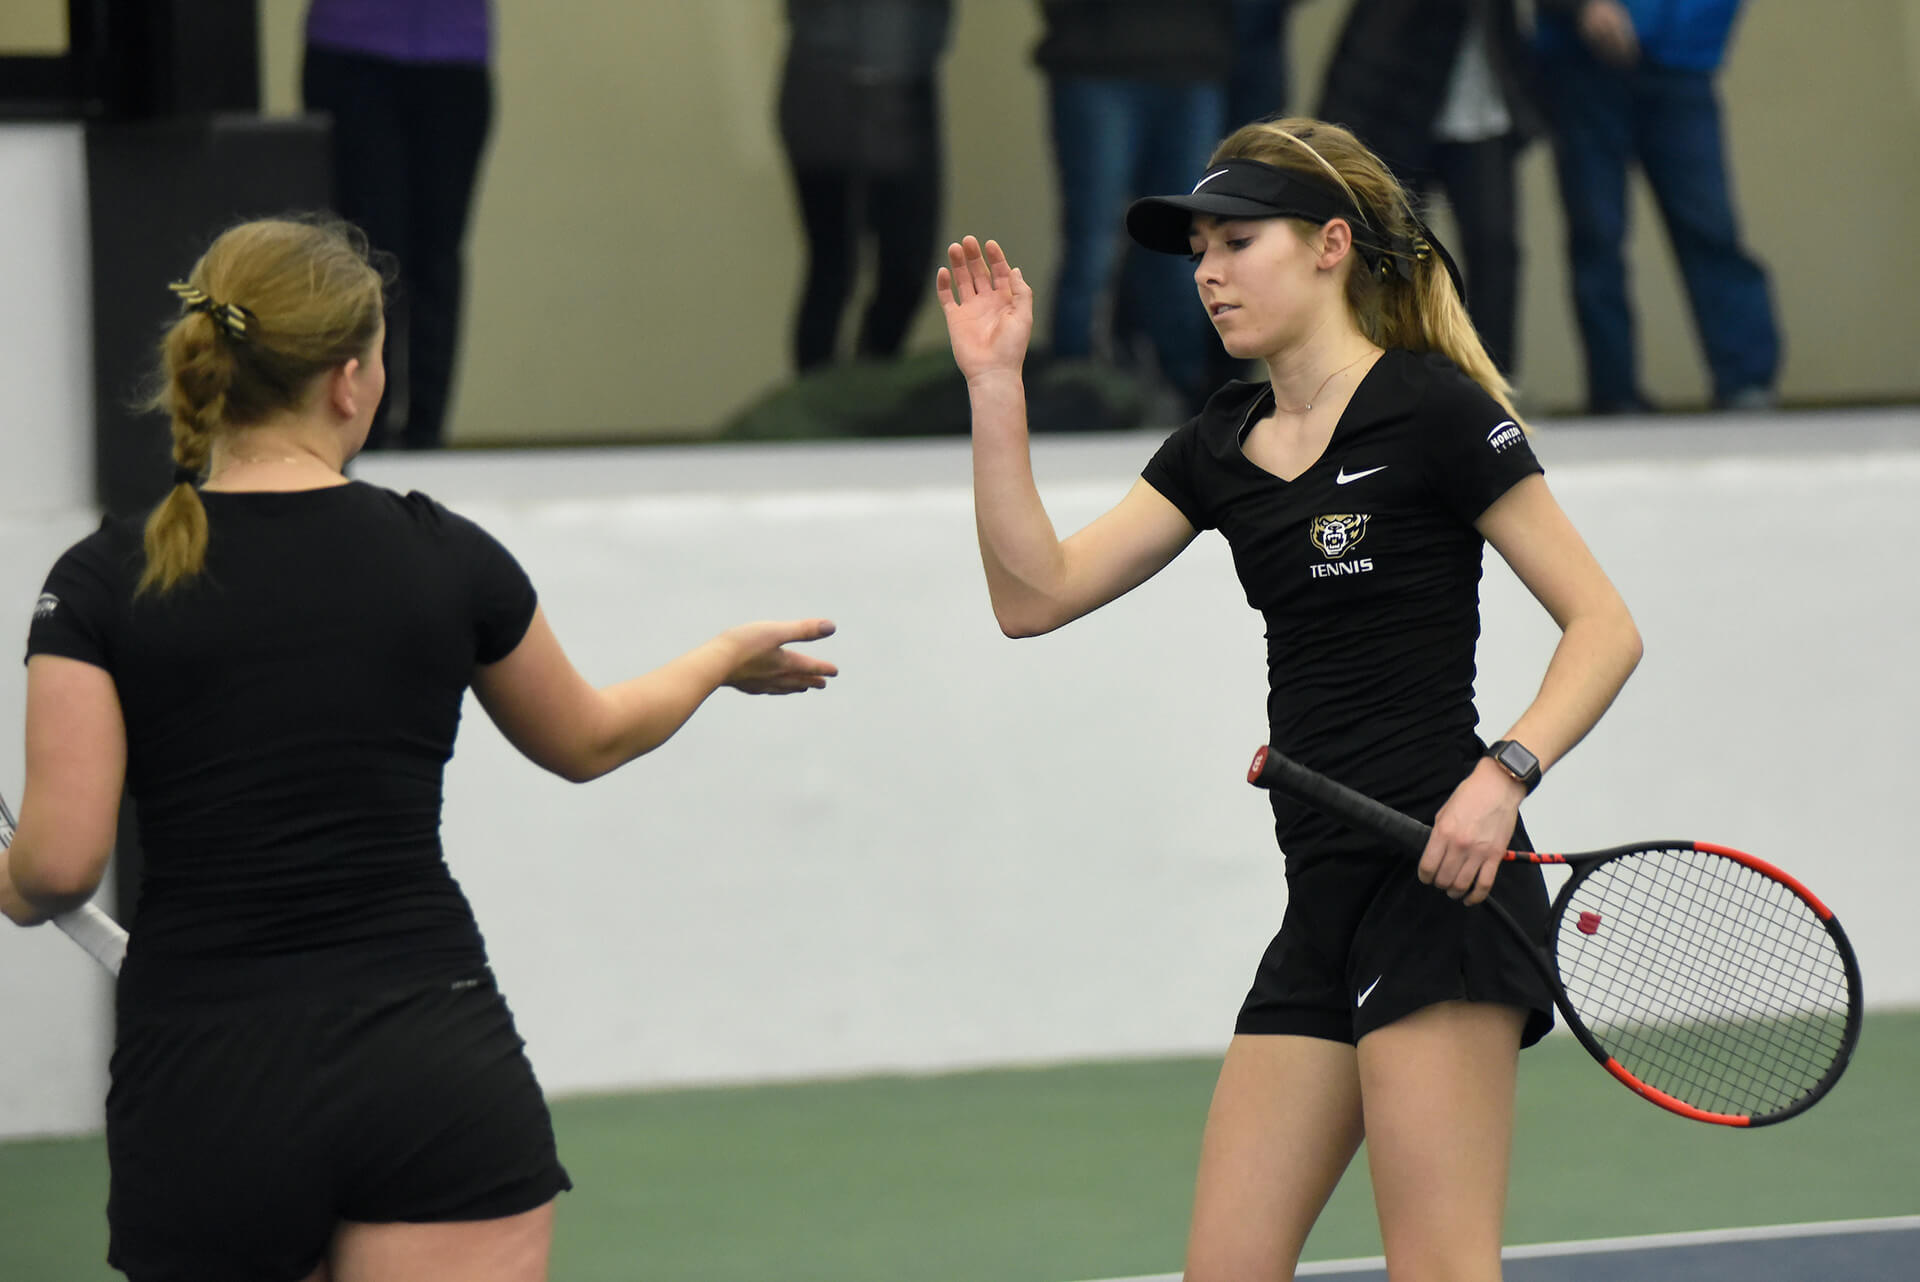 Ava Thielman Oakland Golden Grizzlies Tennis FanWord 1